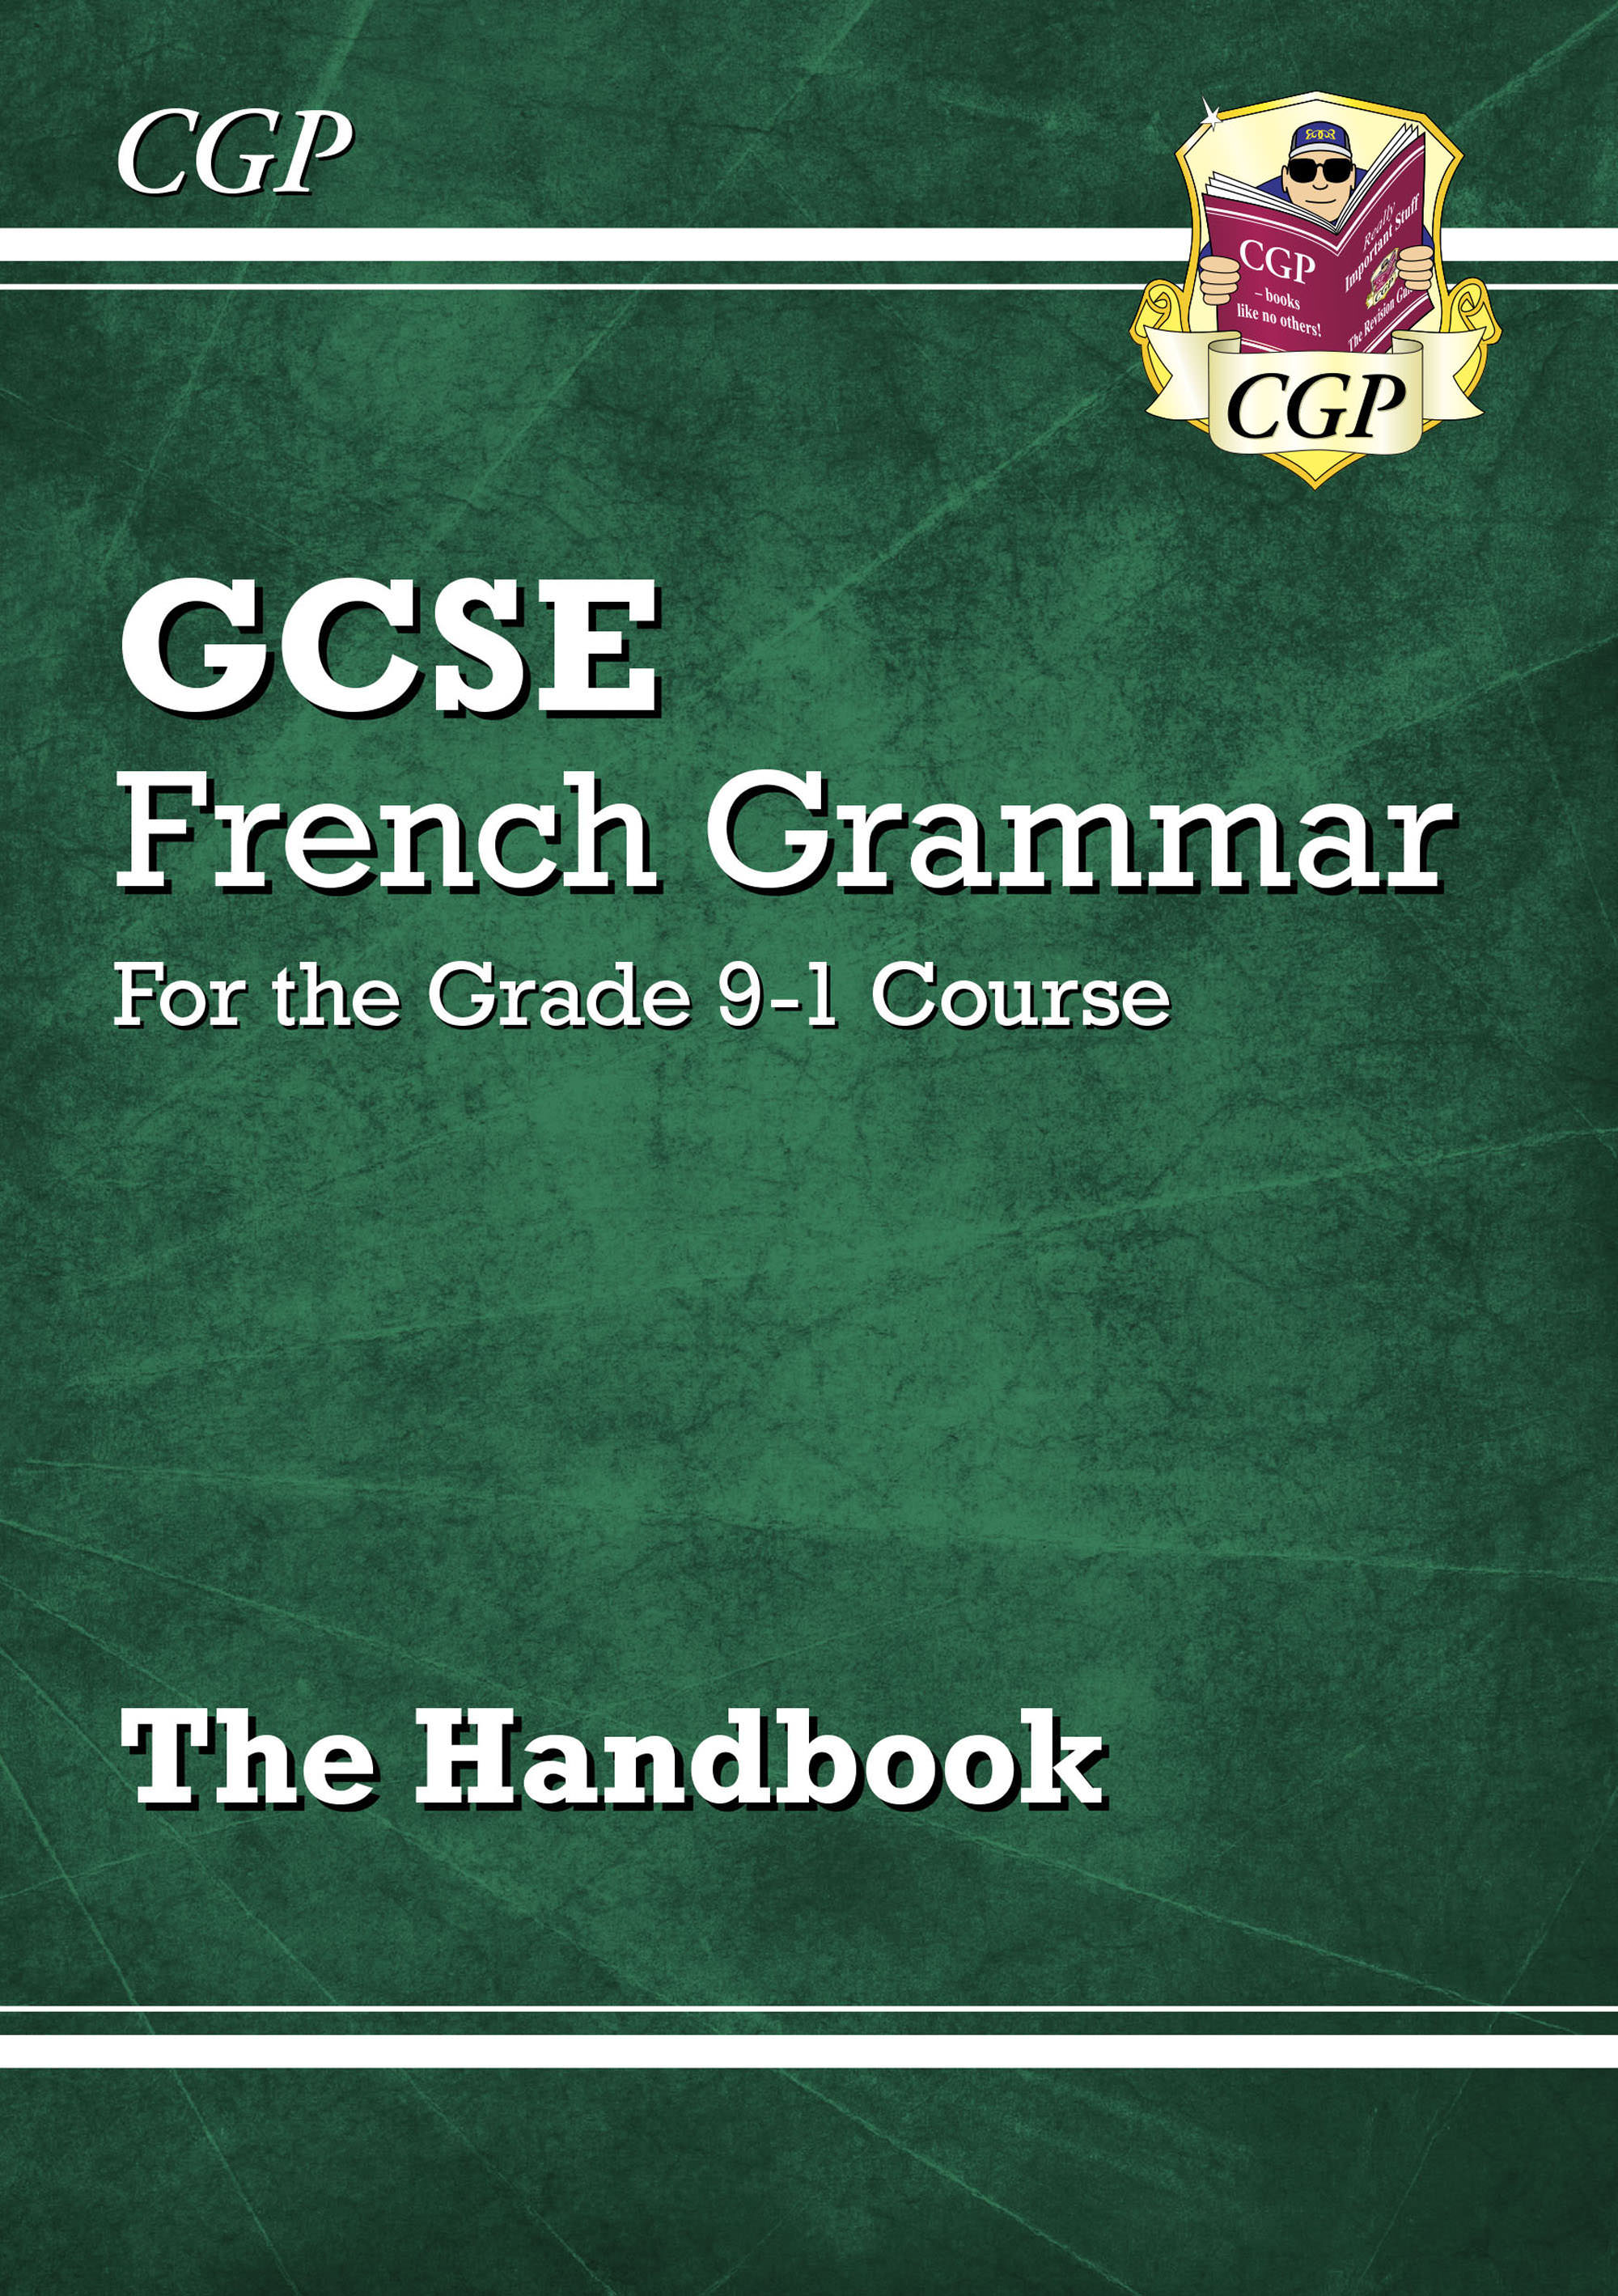 FGR42DK - New GCSE French Grammar Handbook - for the Grade 9-1 Course